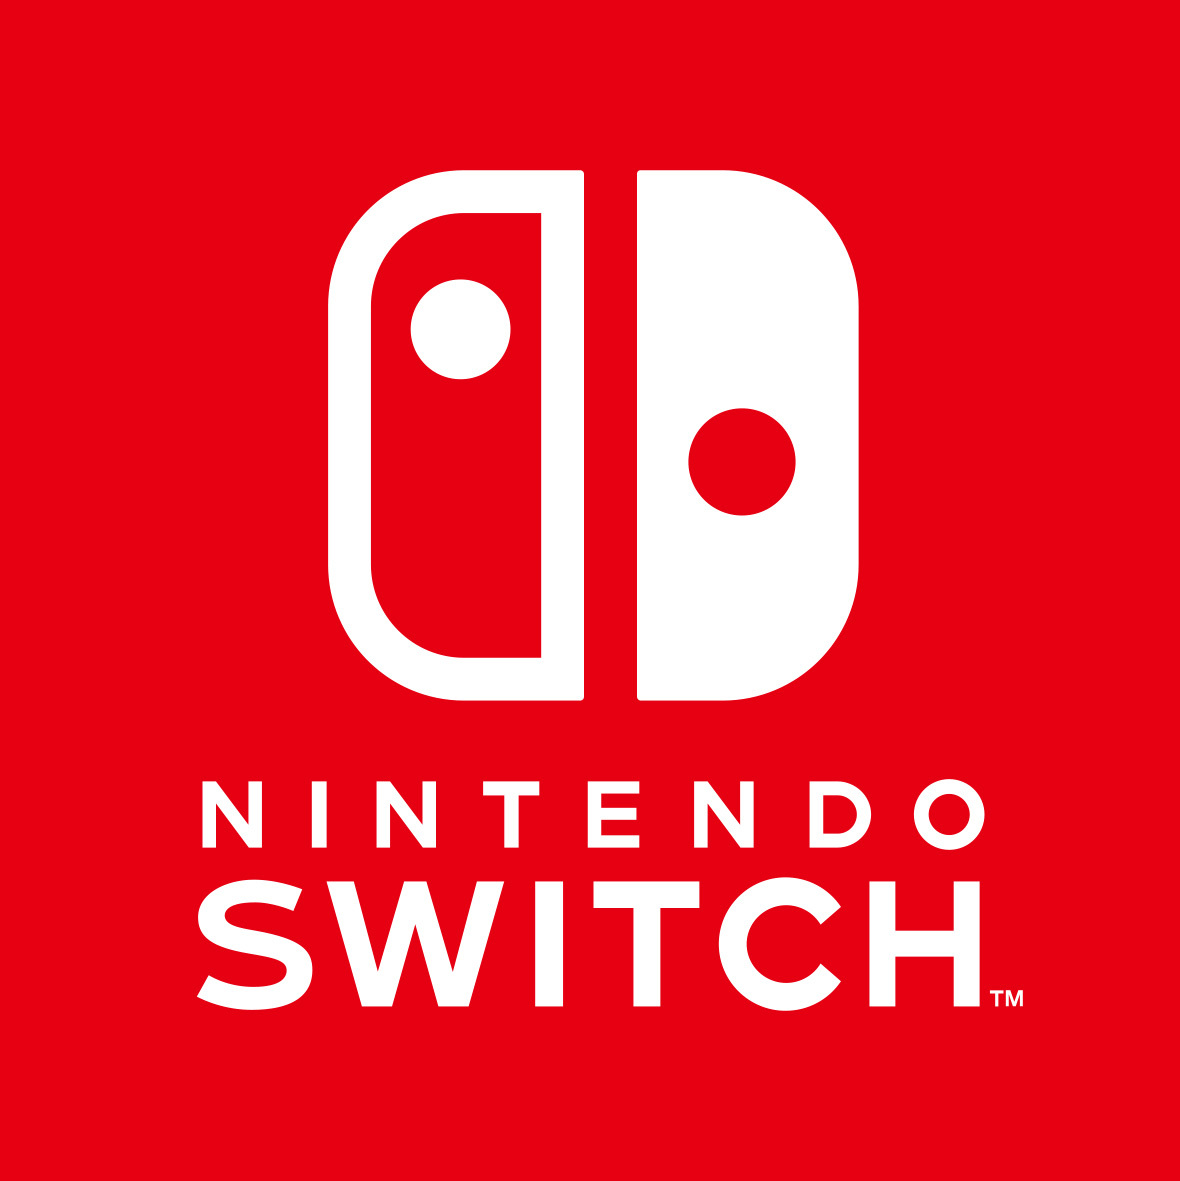 Nintendo news mark your calendars the nintendo switch preview tour nintendo news mark your calendars the nintendo switch preview tour is coming to a city near you business wire thecheapjerseys Gallery